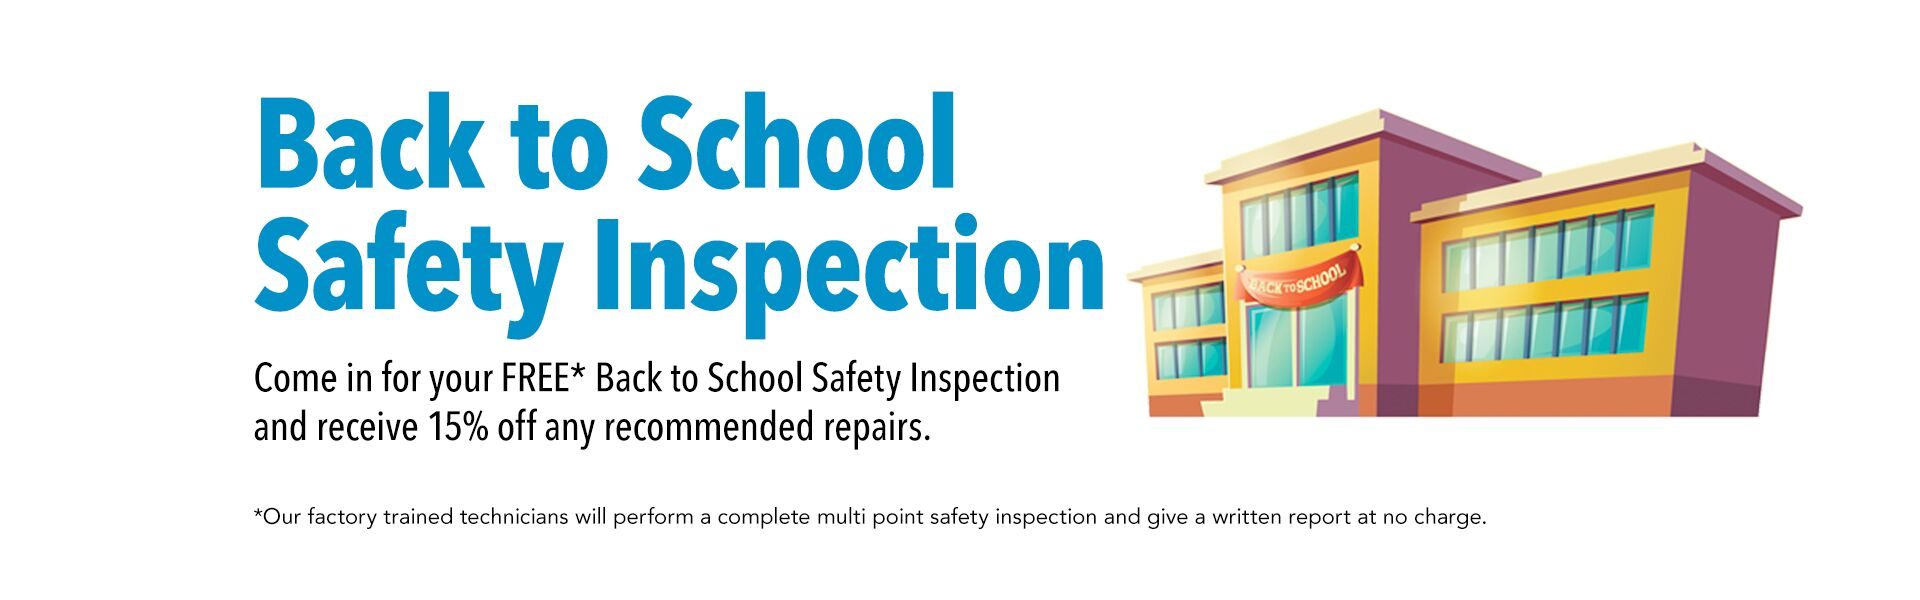 Back to School Safety Inspection